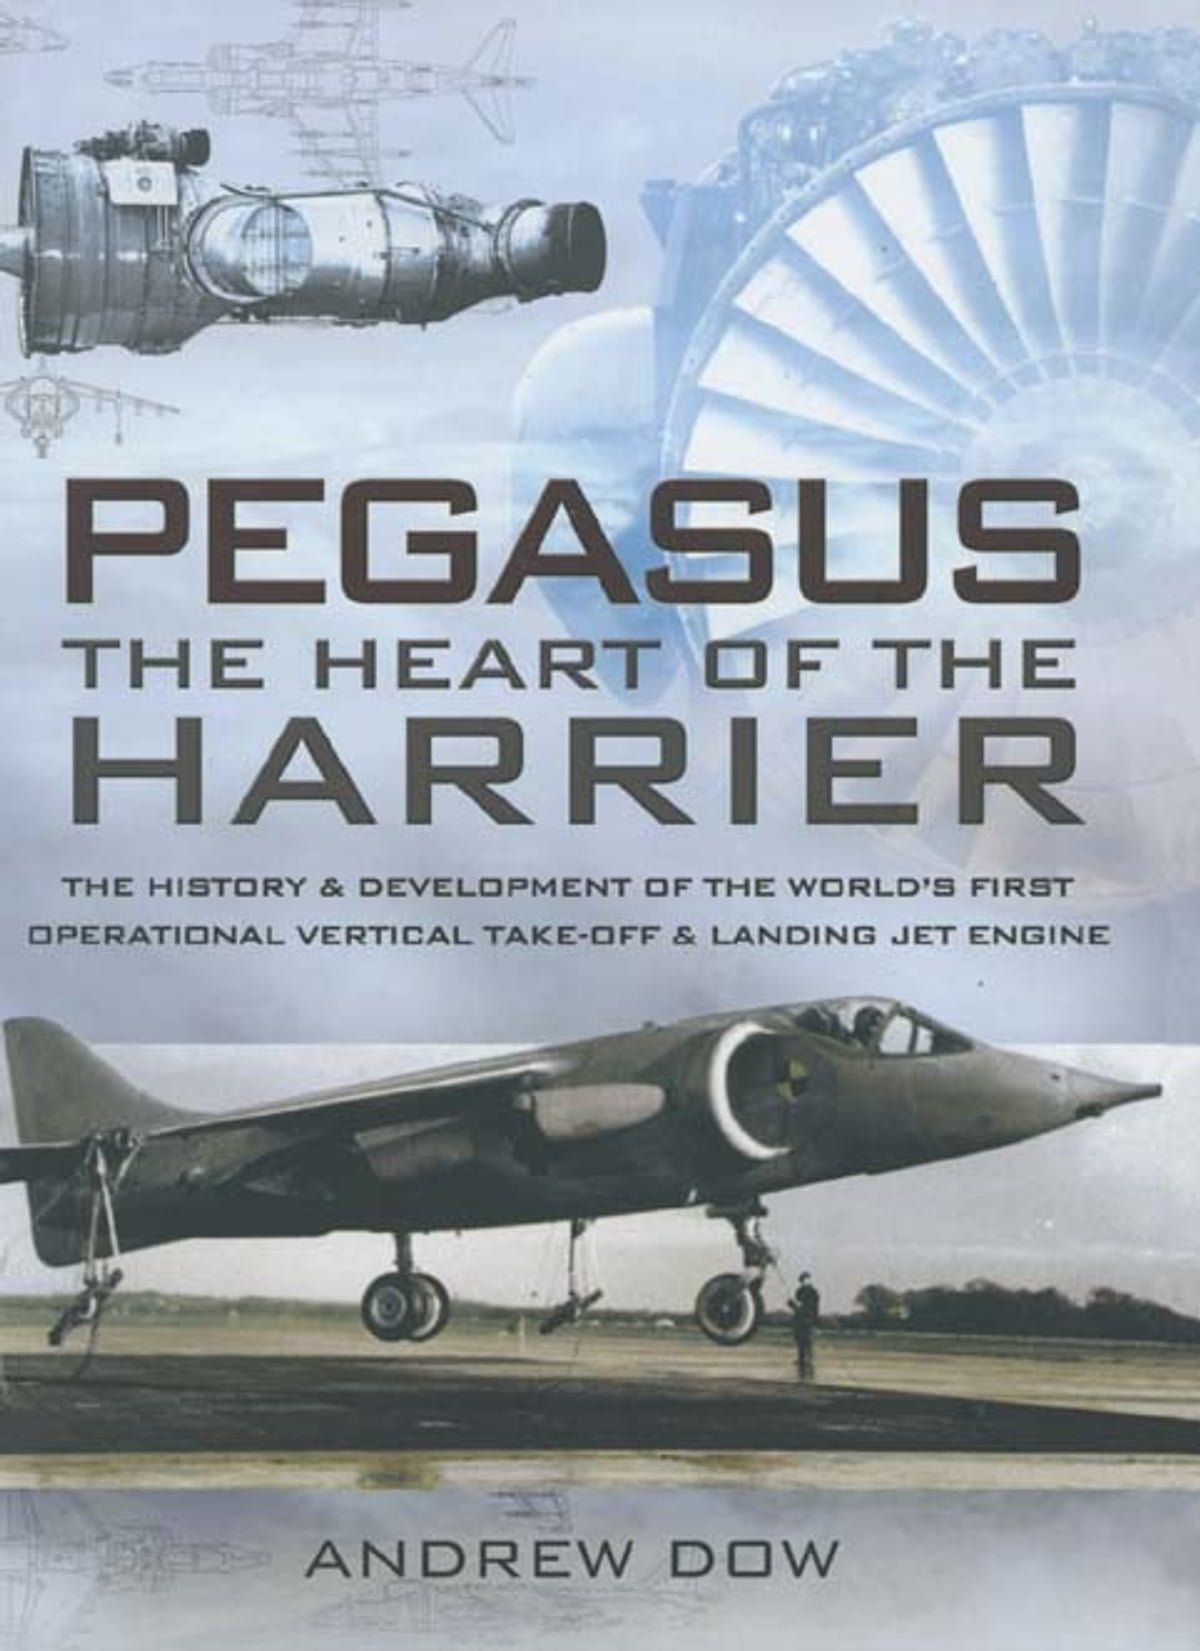 Pegasus The Heart Of Harrier Ebook By Andrew Dow Engine Diagram 9781473817142 Rakuten Kobo